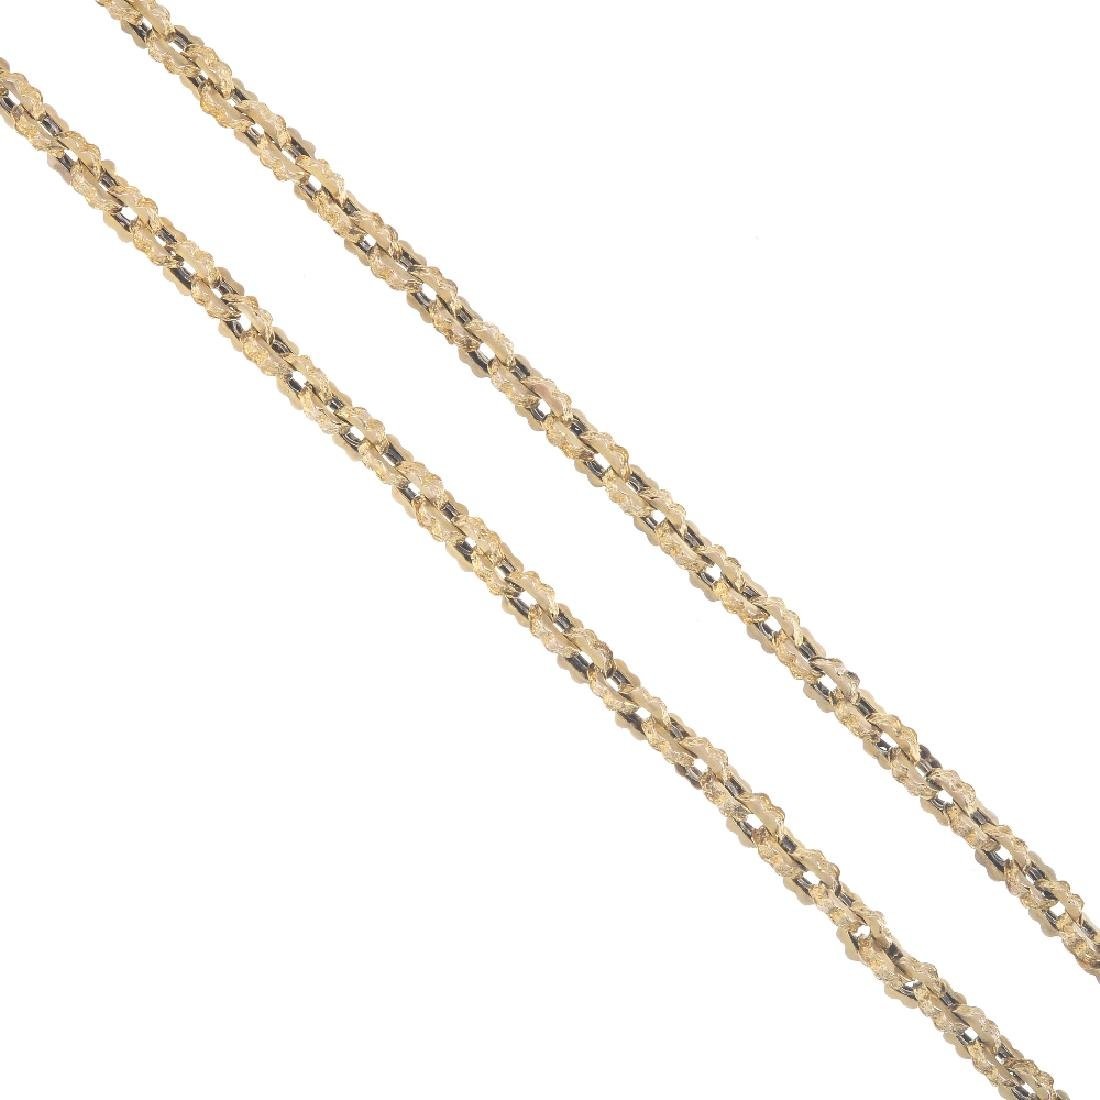 A longuard chain. Designed as a fancy-link chain, with